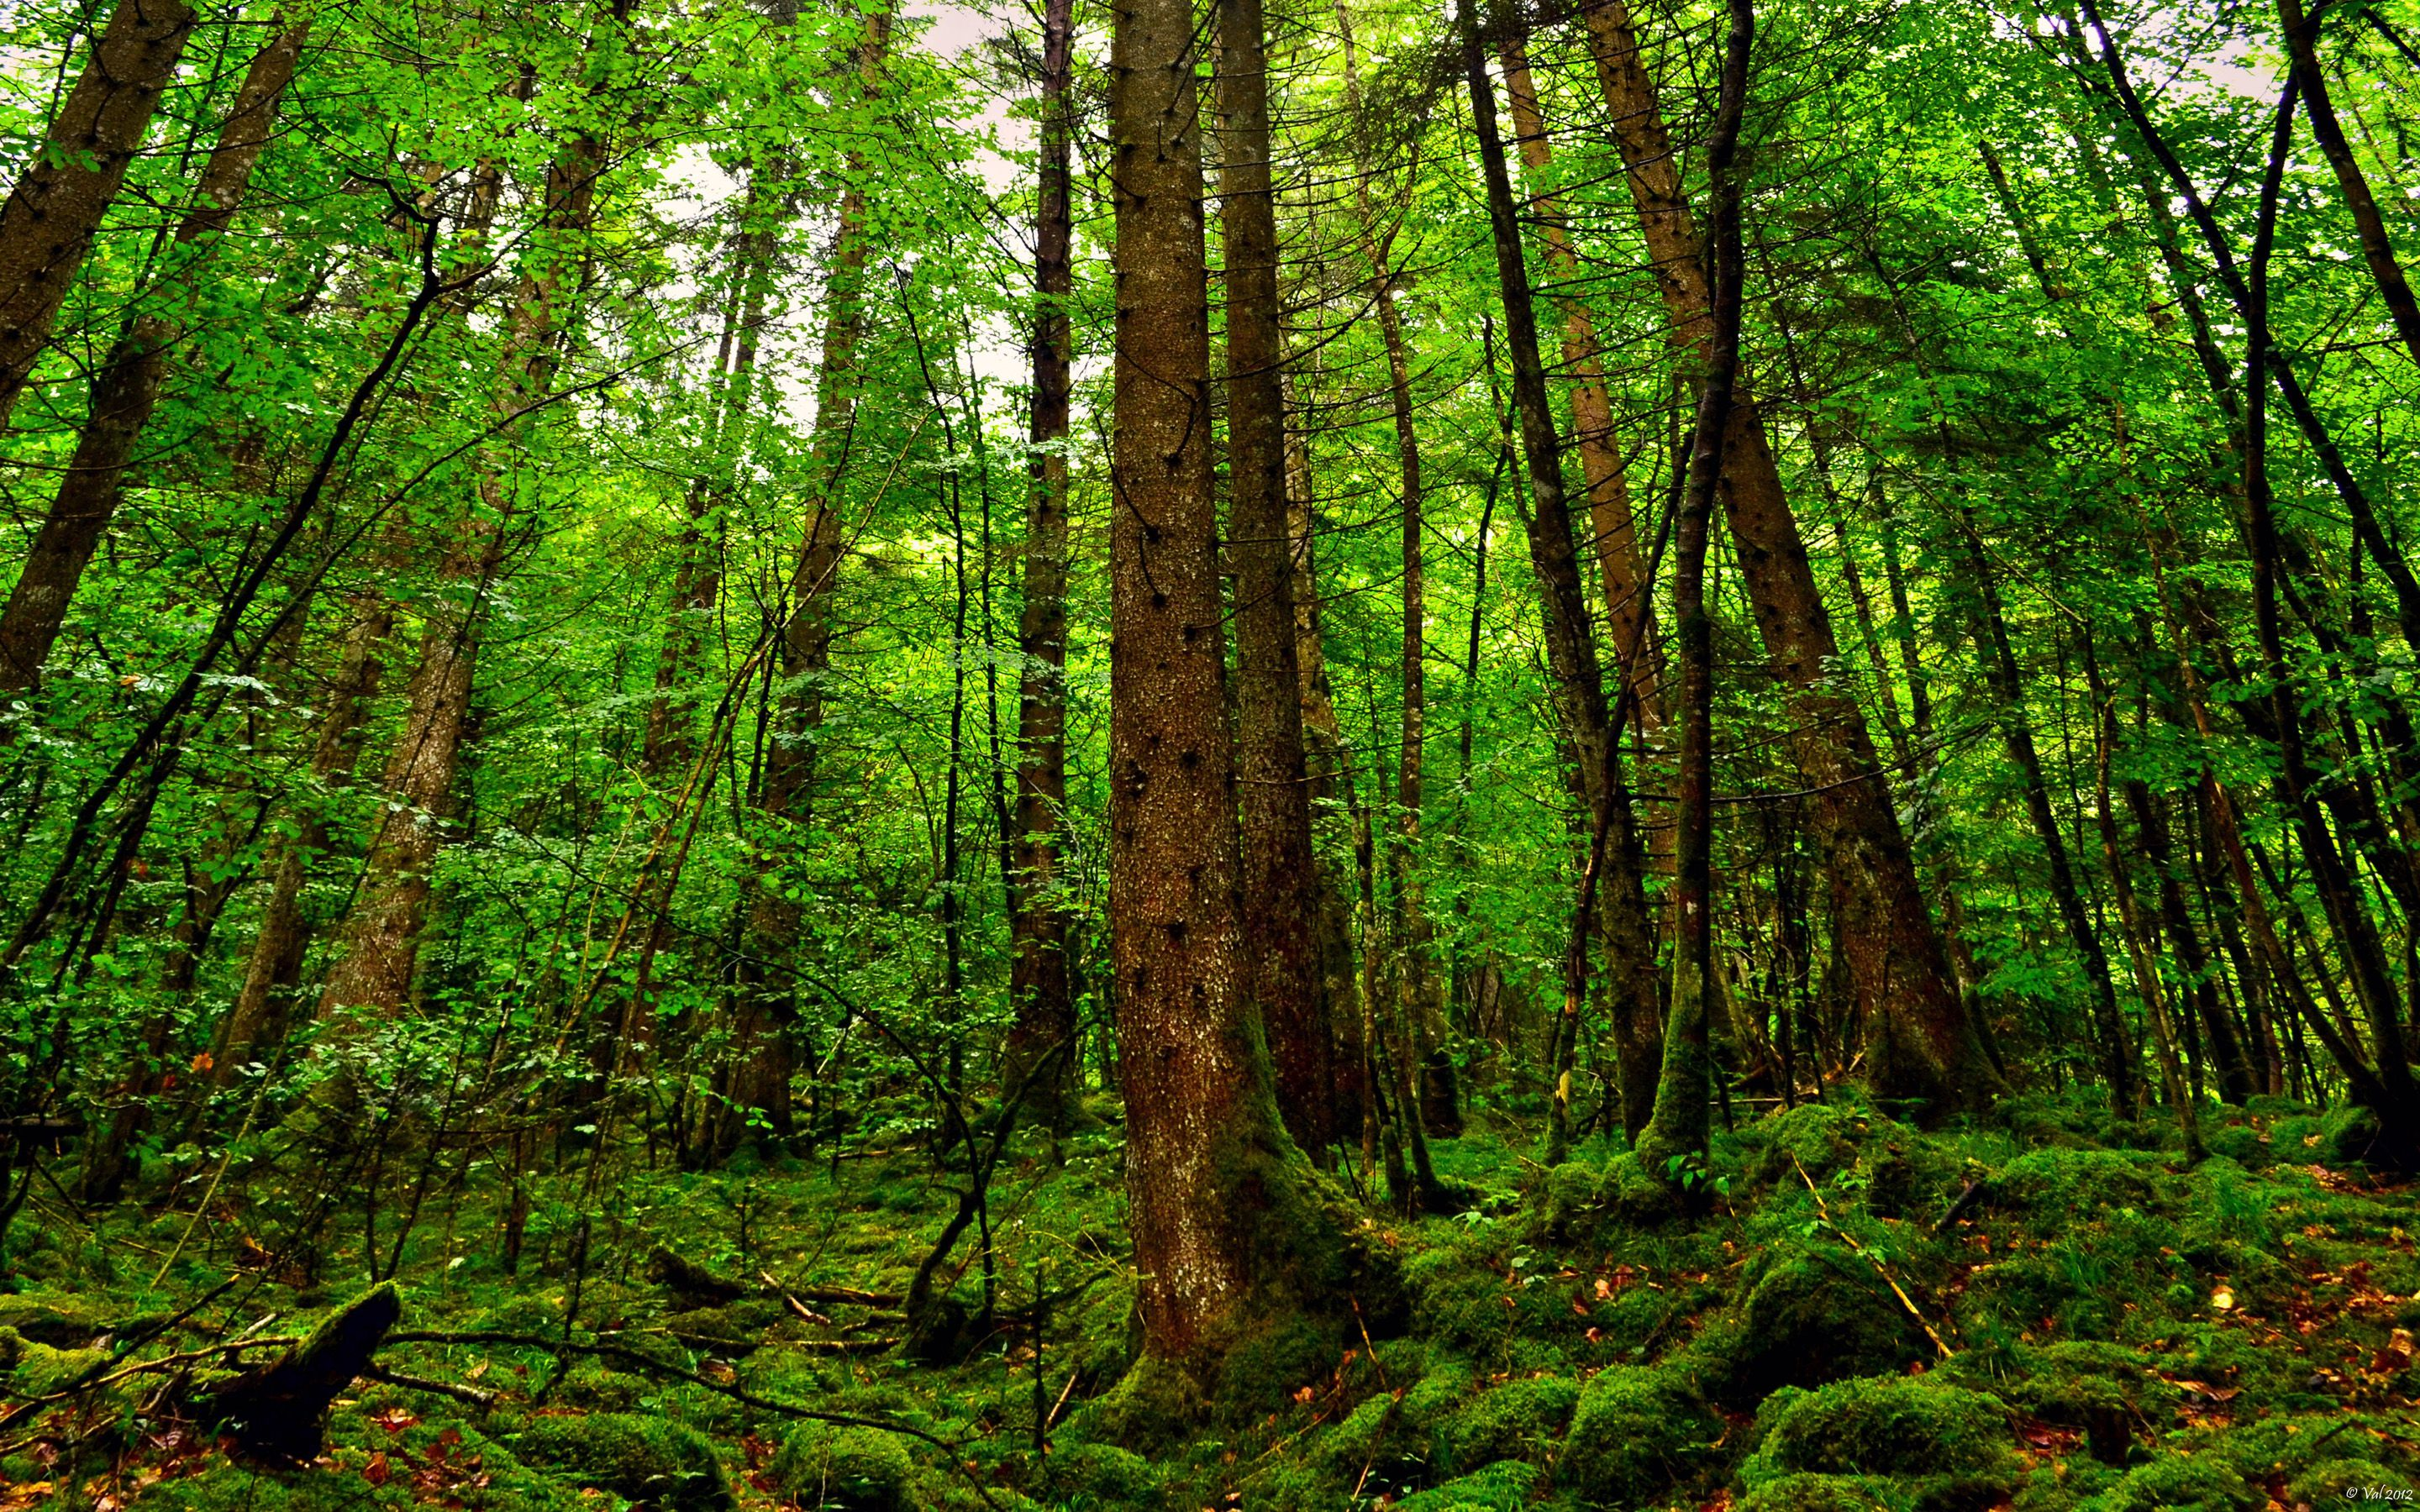 Forest Wall Paper forest wallpaper free 10746 - hd wallpaper site | north american